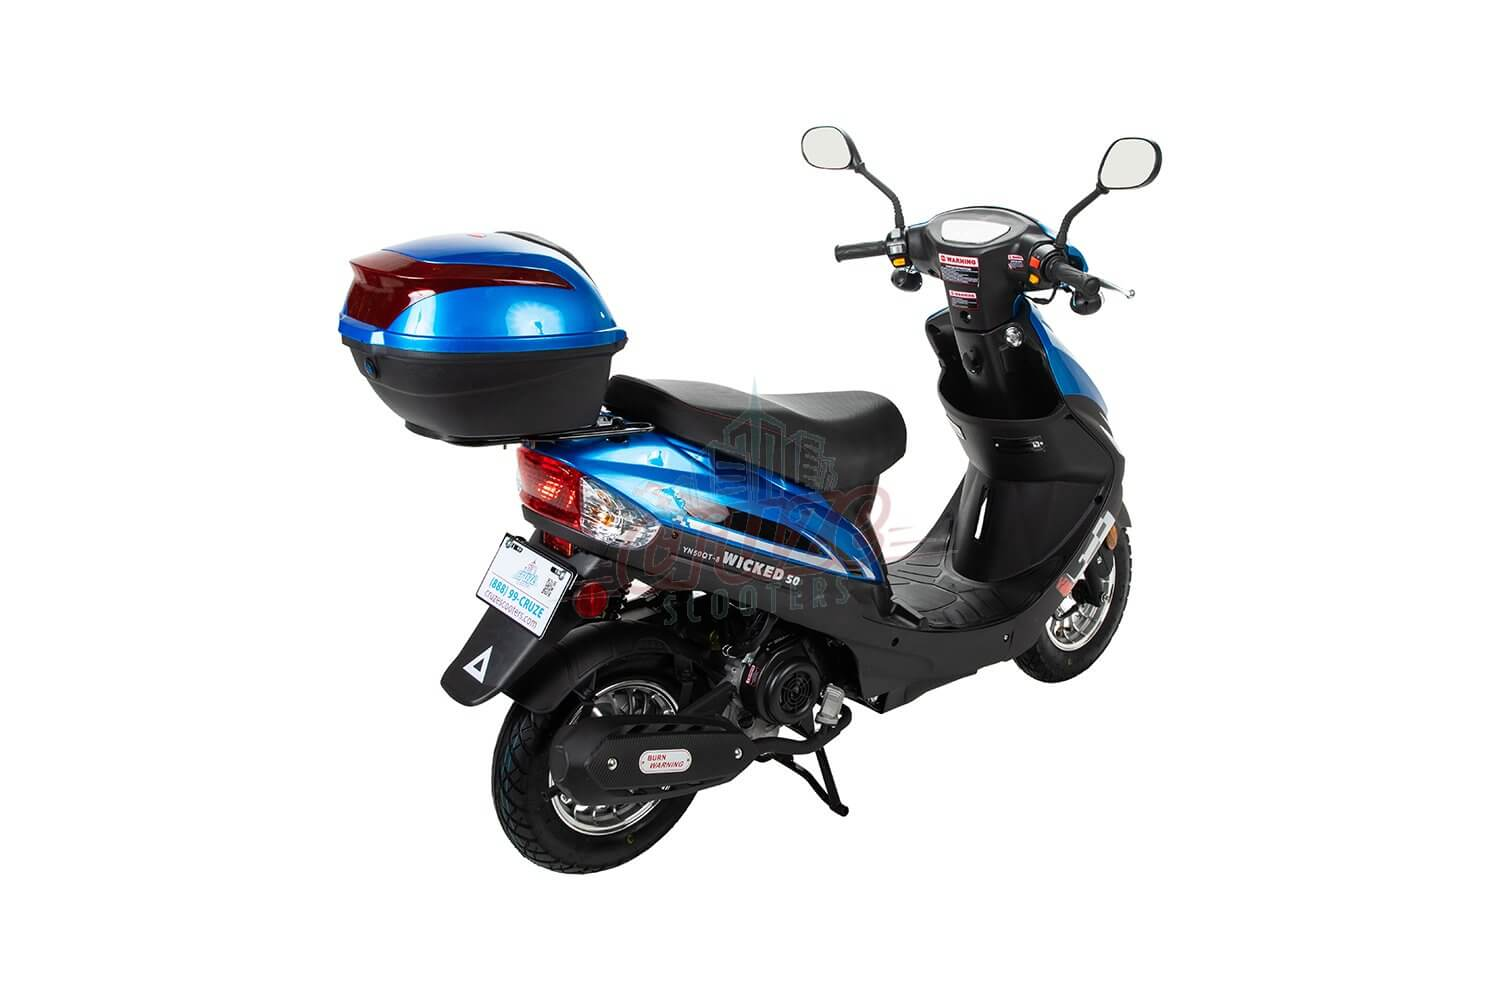 Cruze Wicked 50 Scooter Moped Online Sale